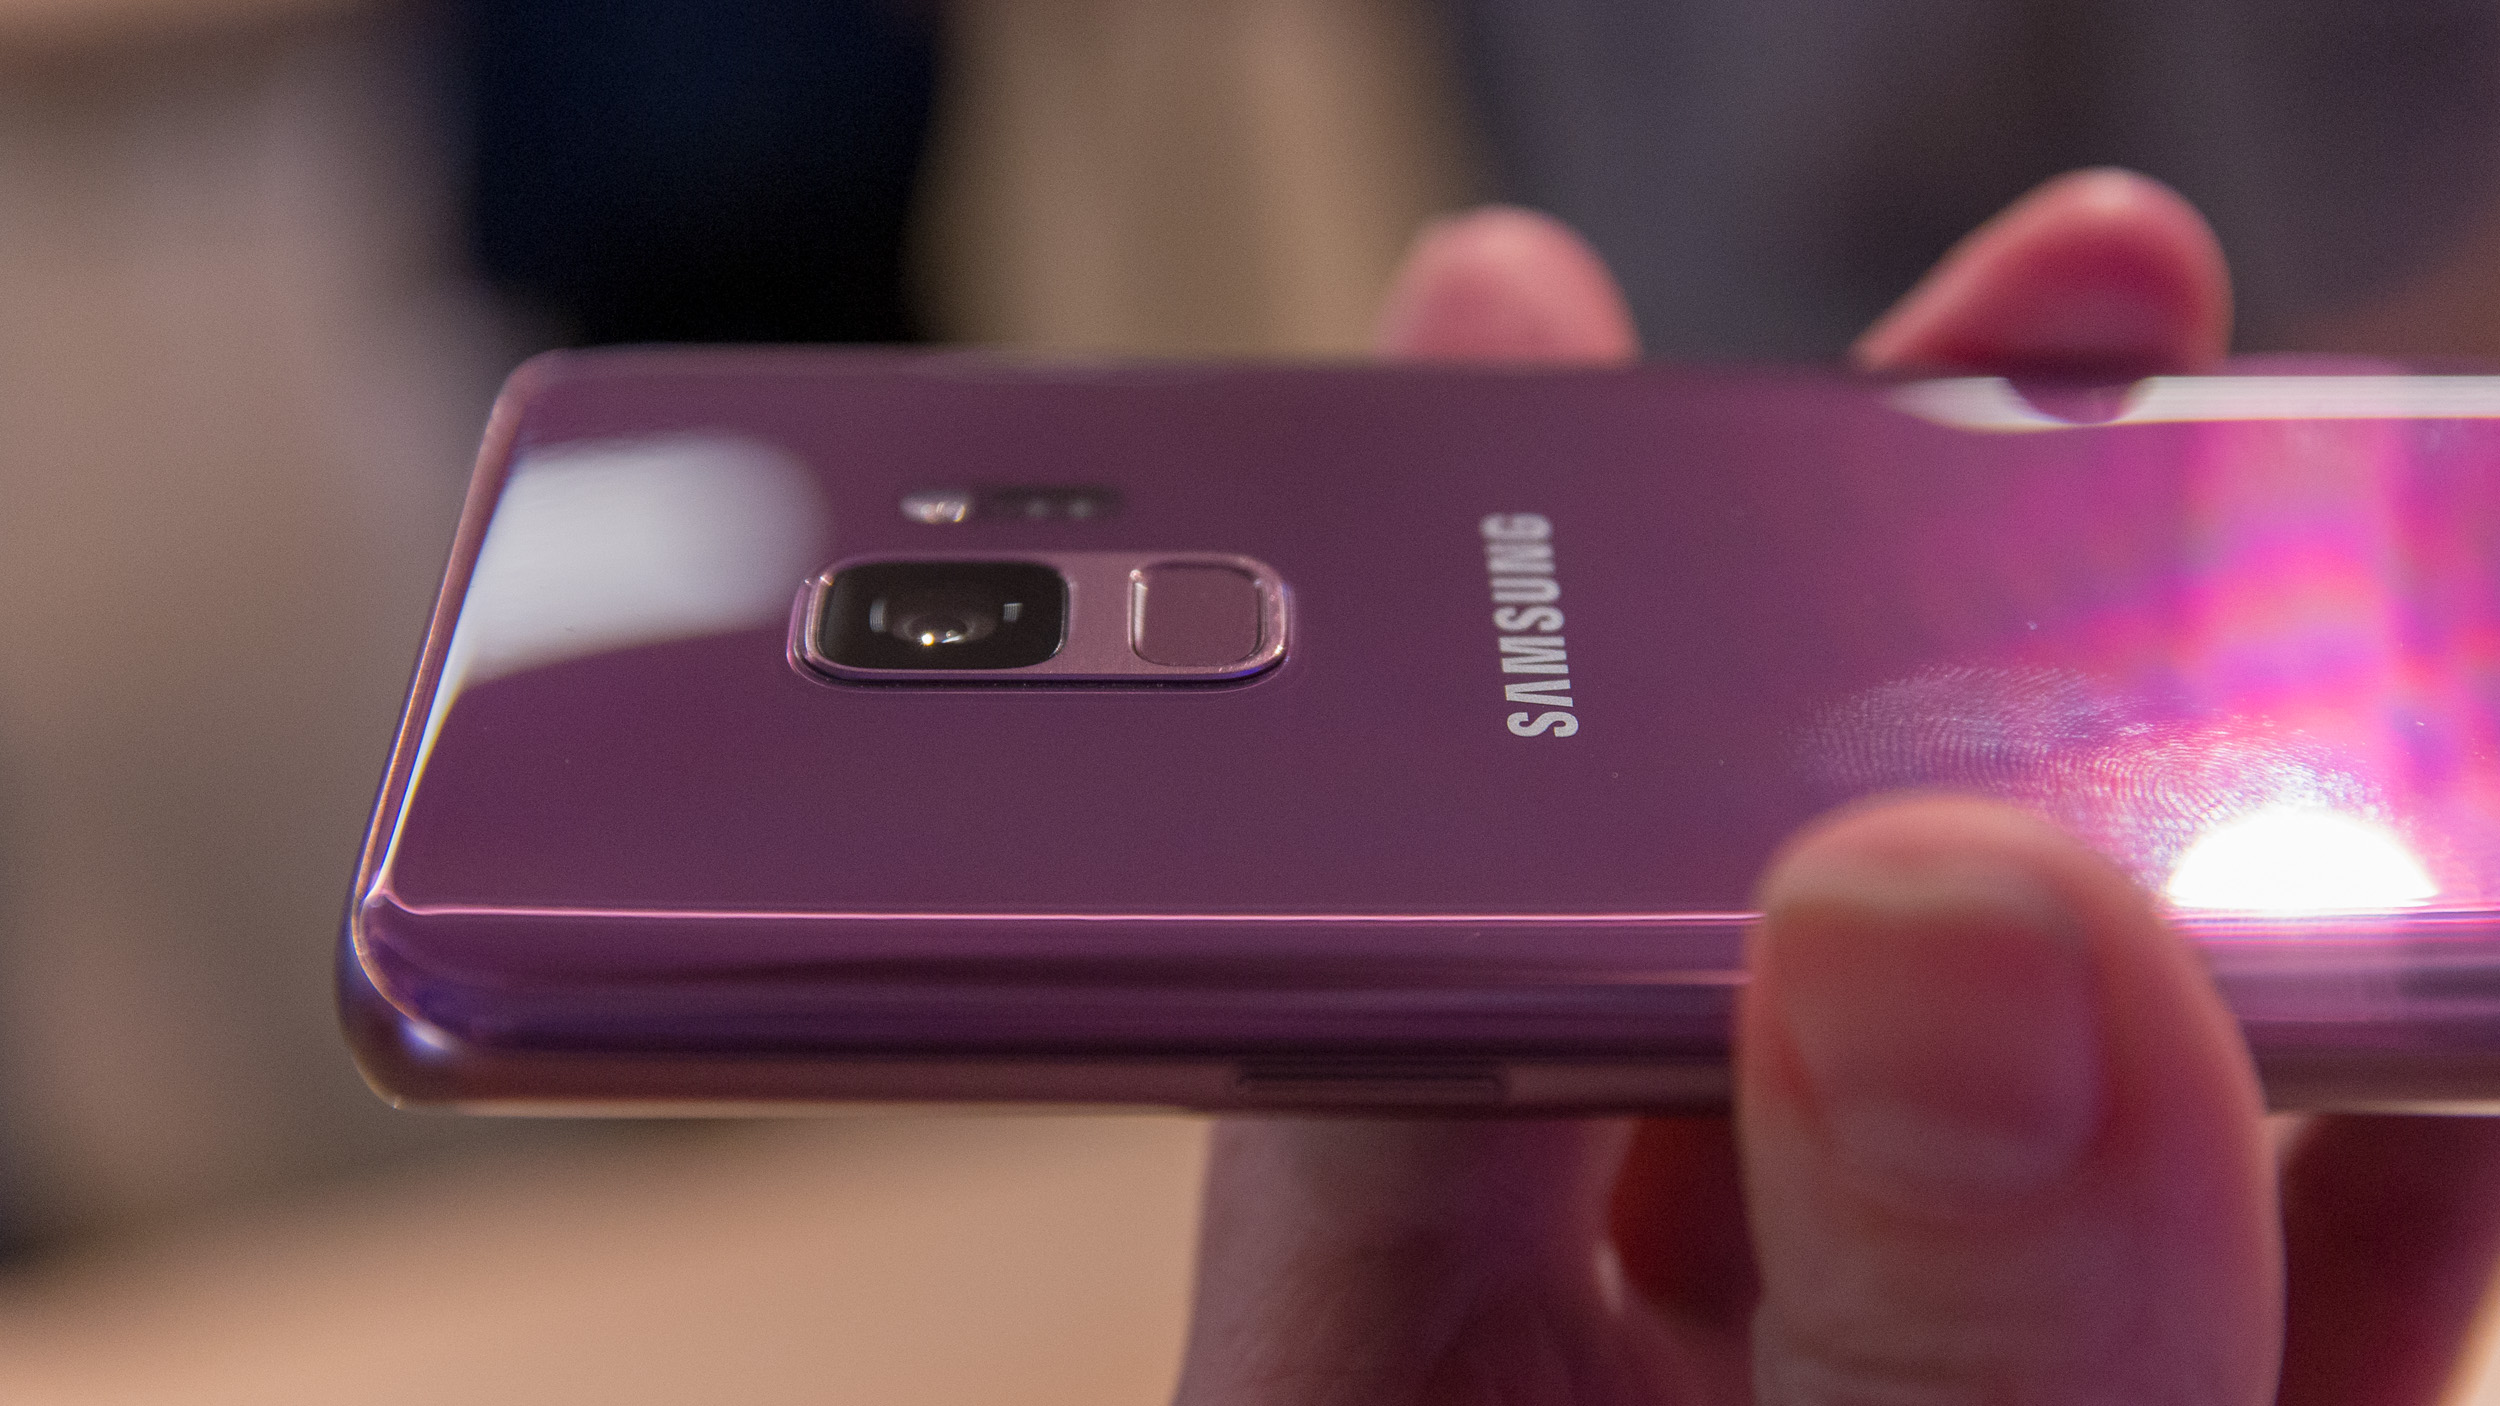 Samsung uhd s9 review